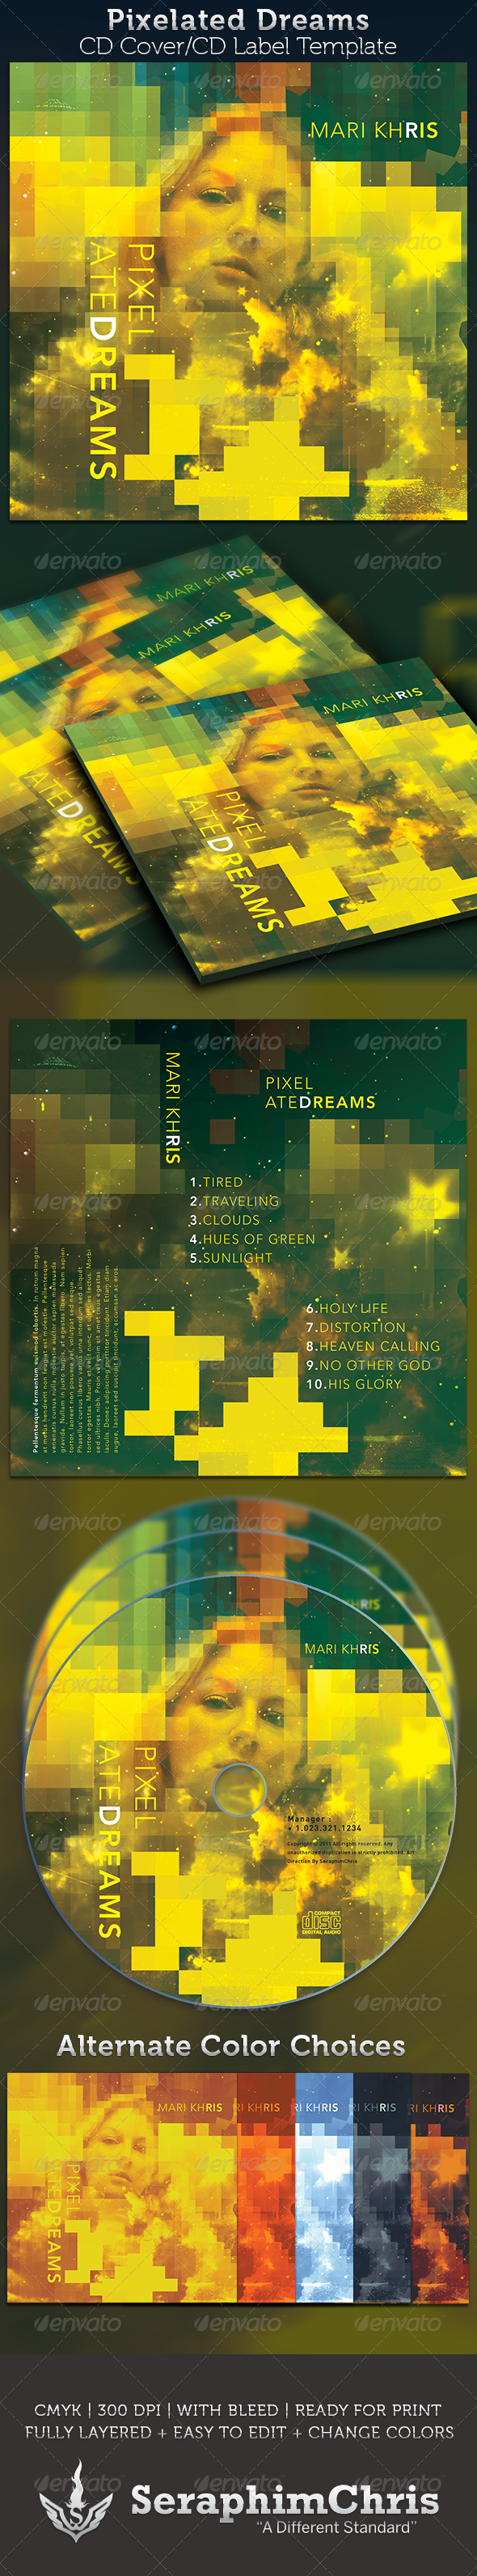 Pixelated Dreams CD Cover Artwork Template - CD & DVD Artwork Print Templates